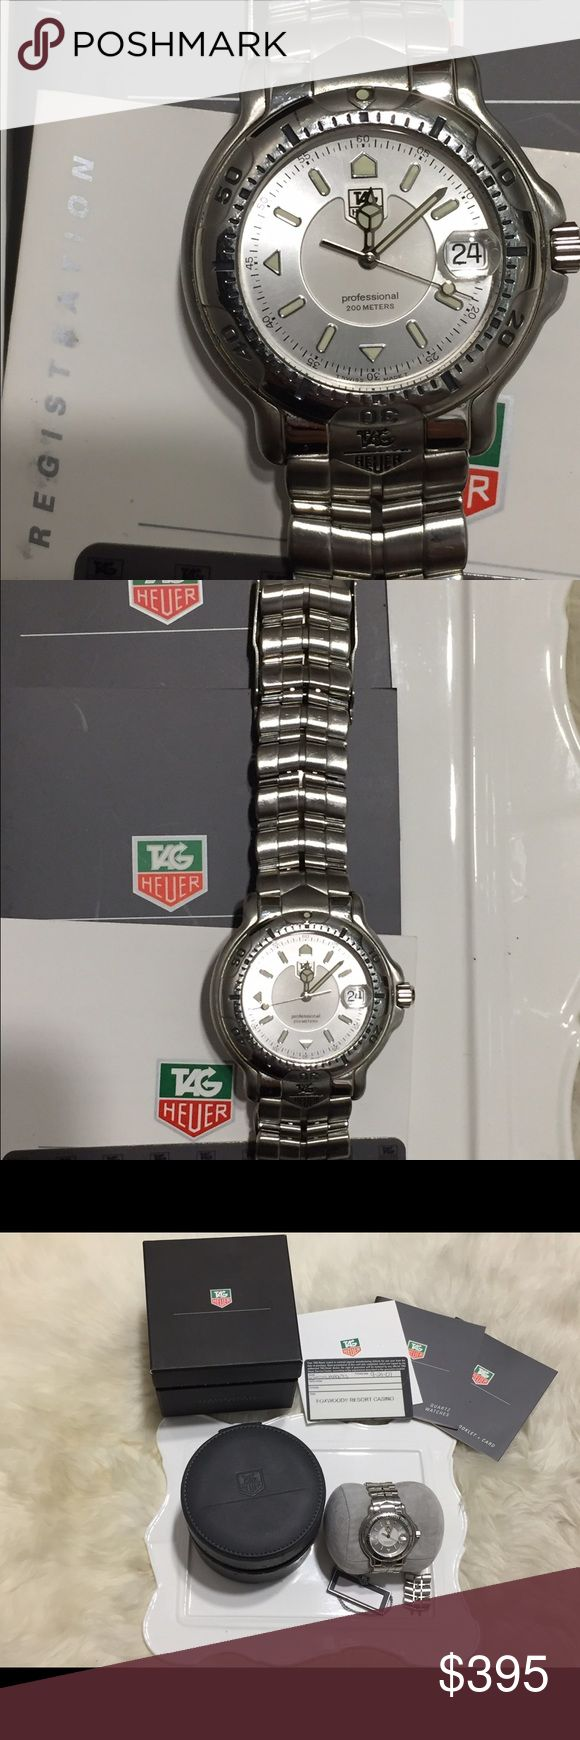 Tag Heuer Men's Professional 6000 white dial Great condition, original box, tags, extra link and brand new battery. Size is 40mm including the crown. Hubby got it as a birthday gift over 10 years ago. No trade and will consider a reasonable offer. Tag Heuer Accessories Watches